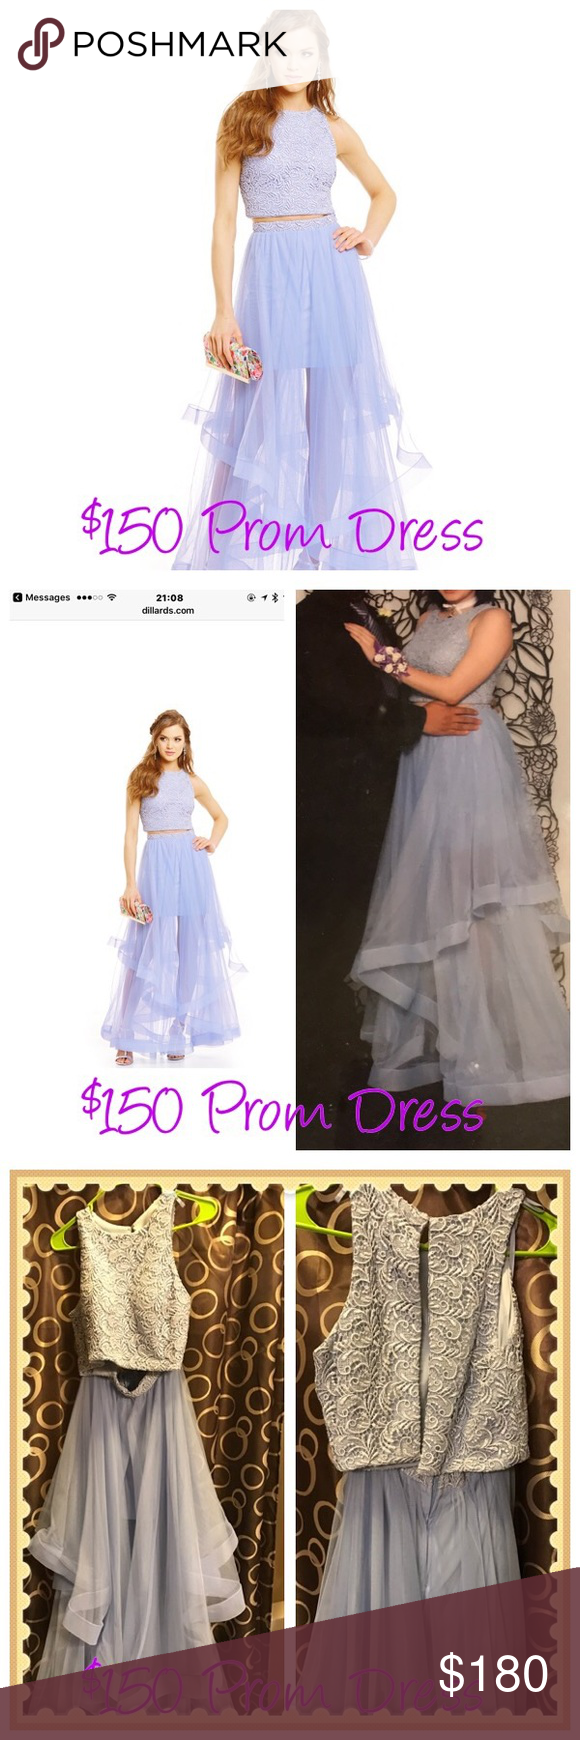 Two piece layered skirt gown prom dress sz periwinkle color